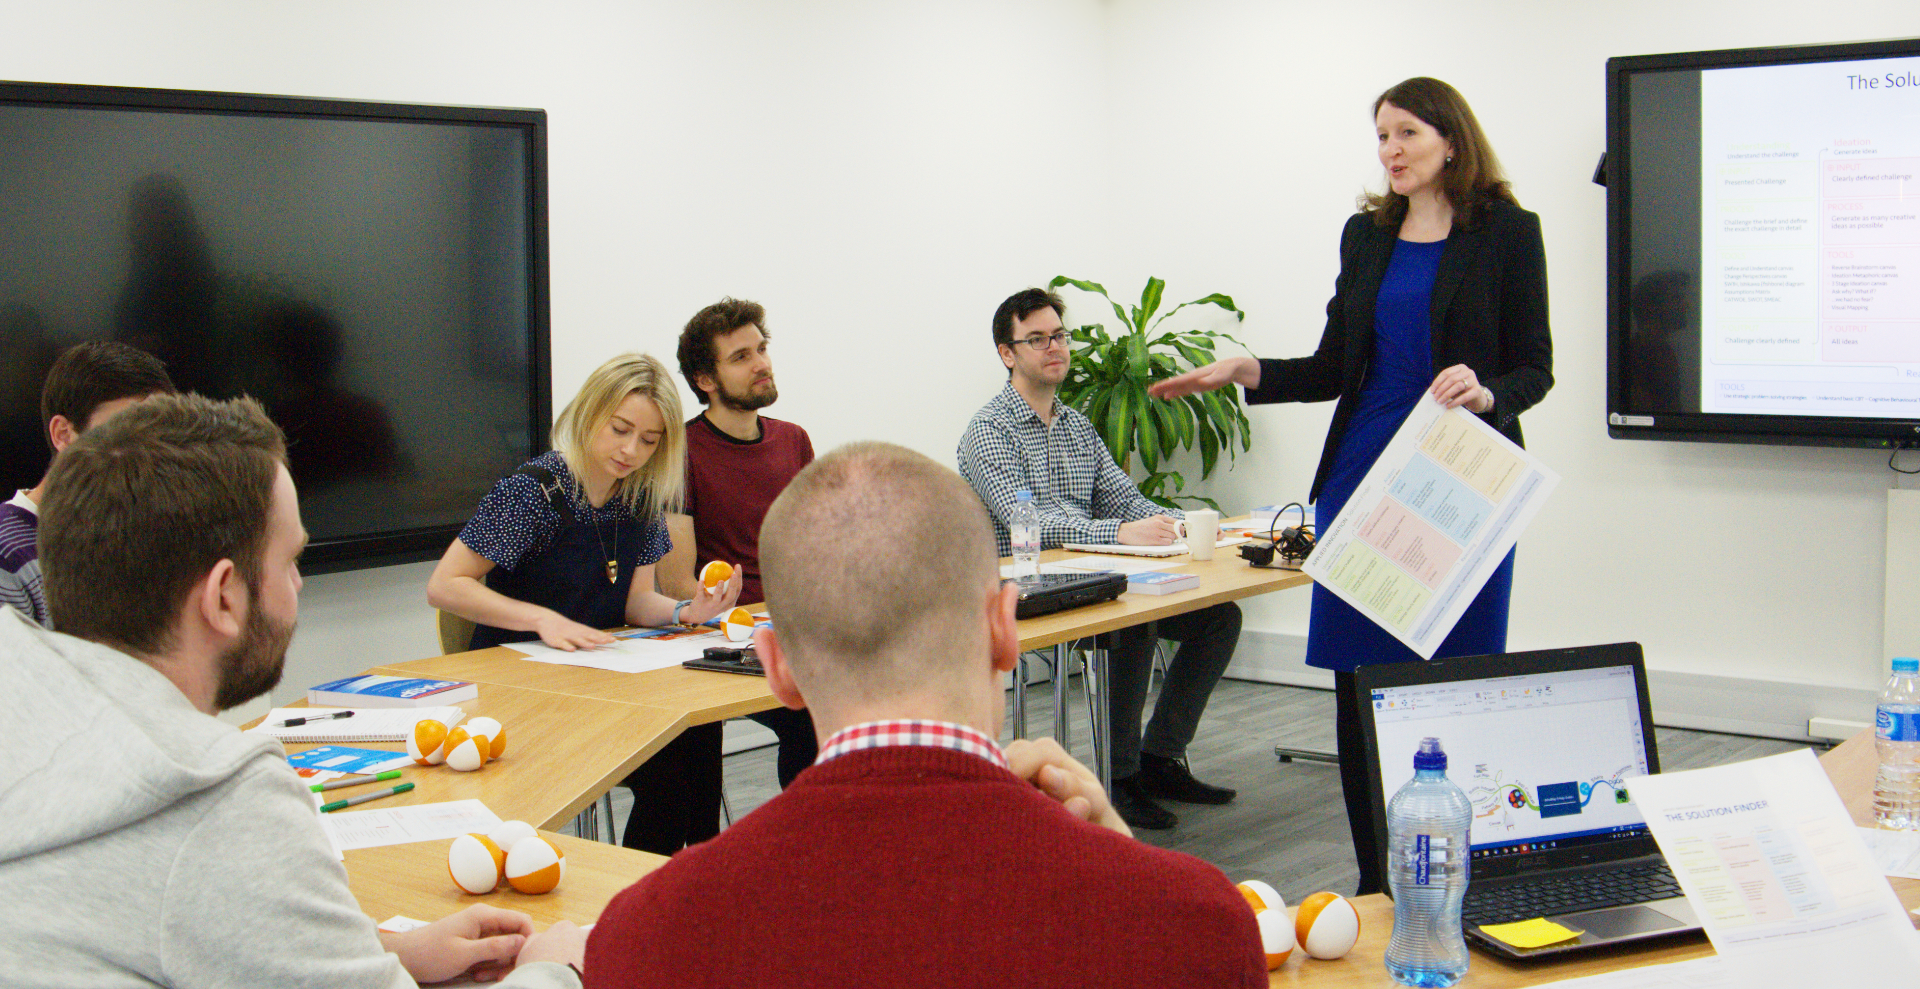 Liz presenting the Tony Buzan Licensed Instructor course in Mind Mapping